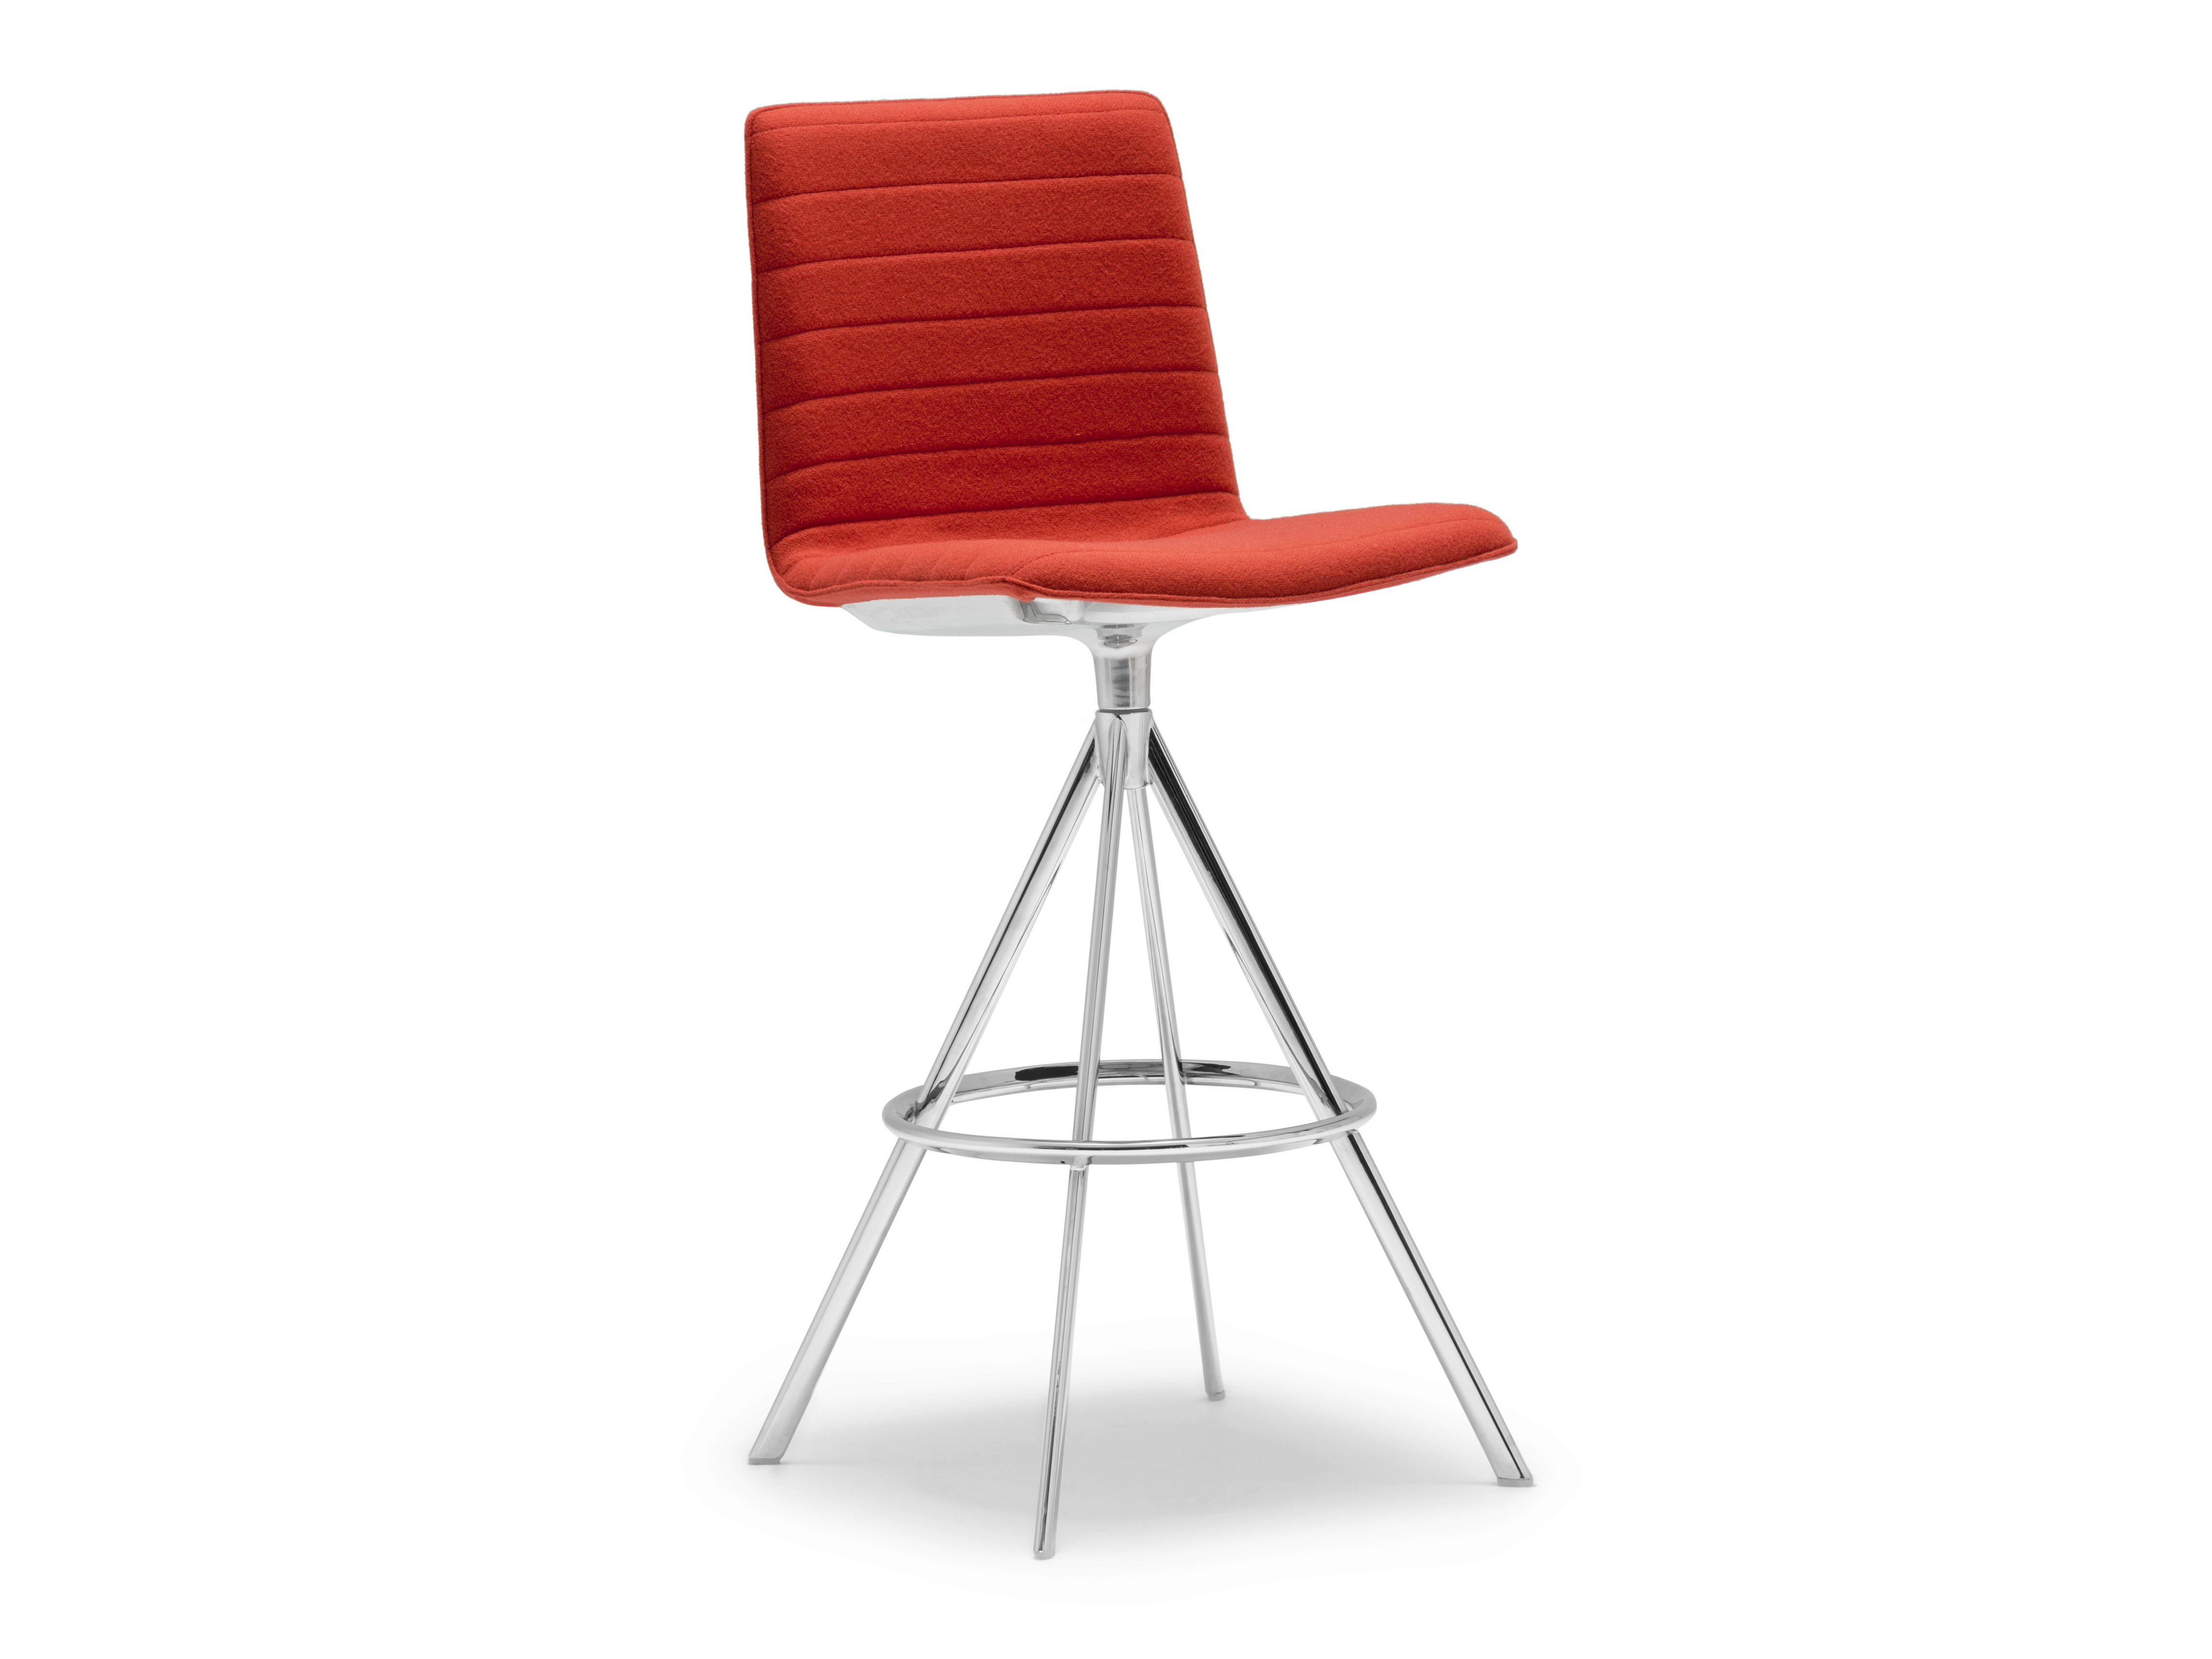 Upholstered Trestle Based Counter Stool Flex Collection By